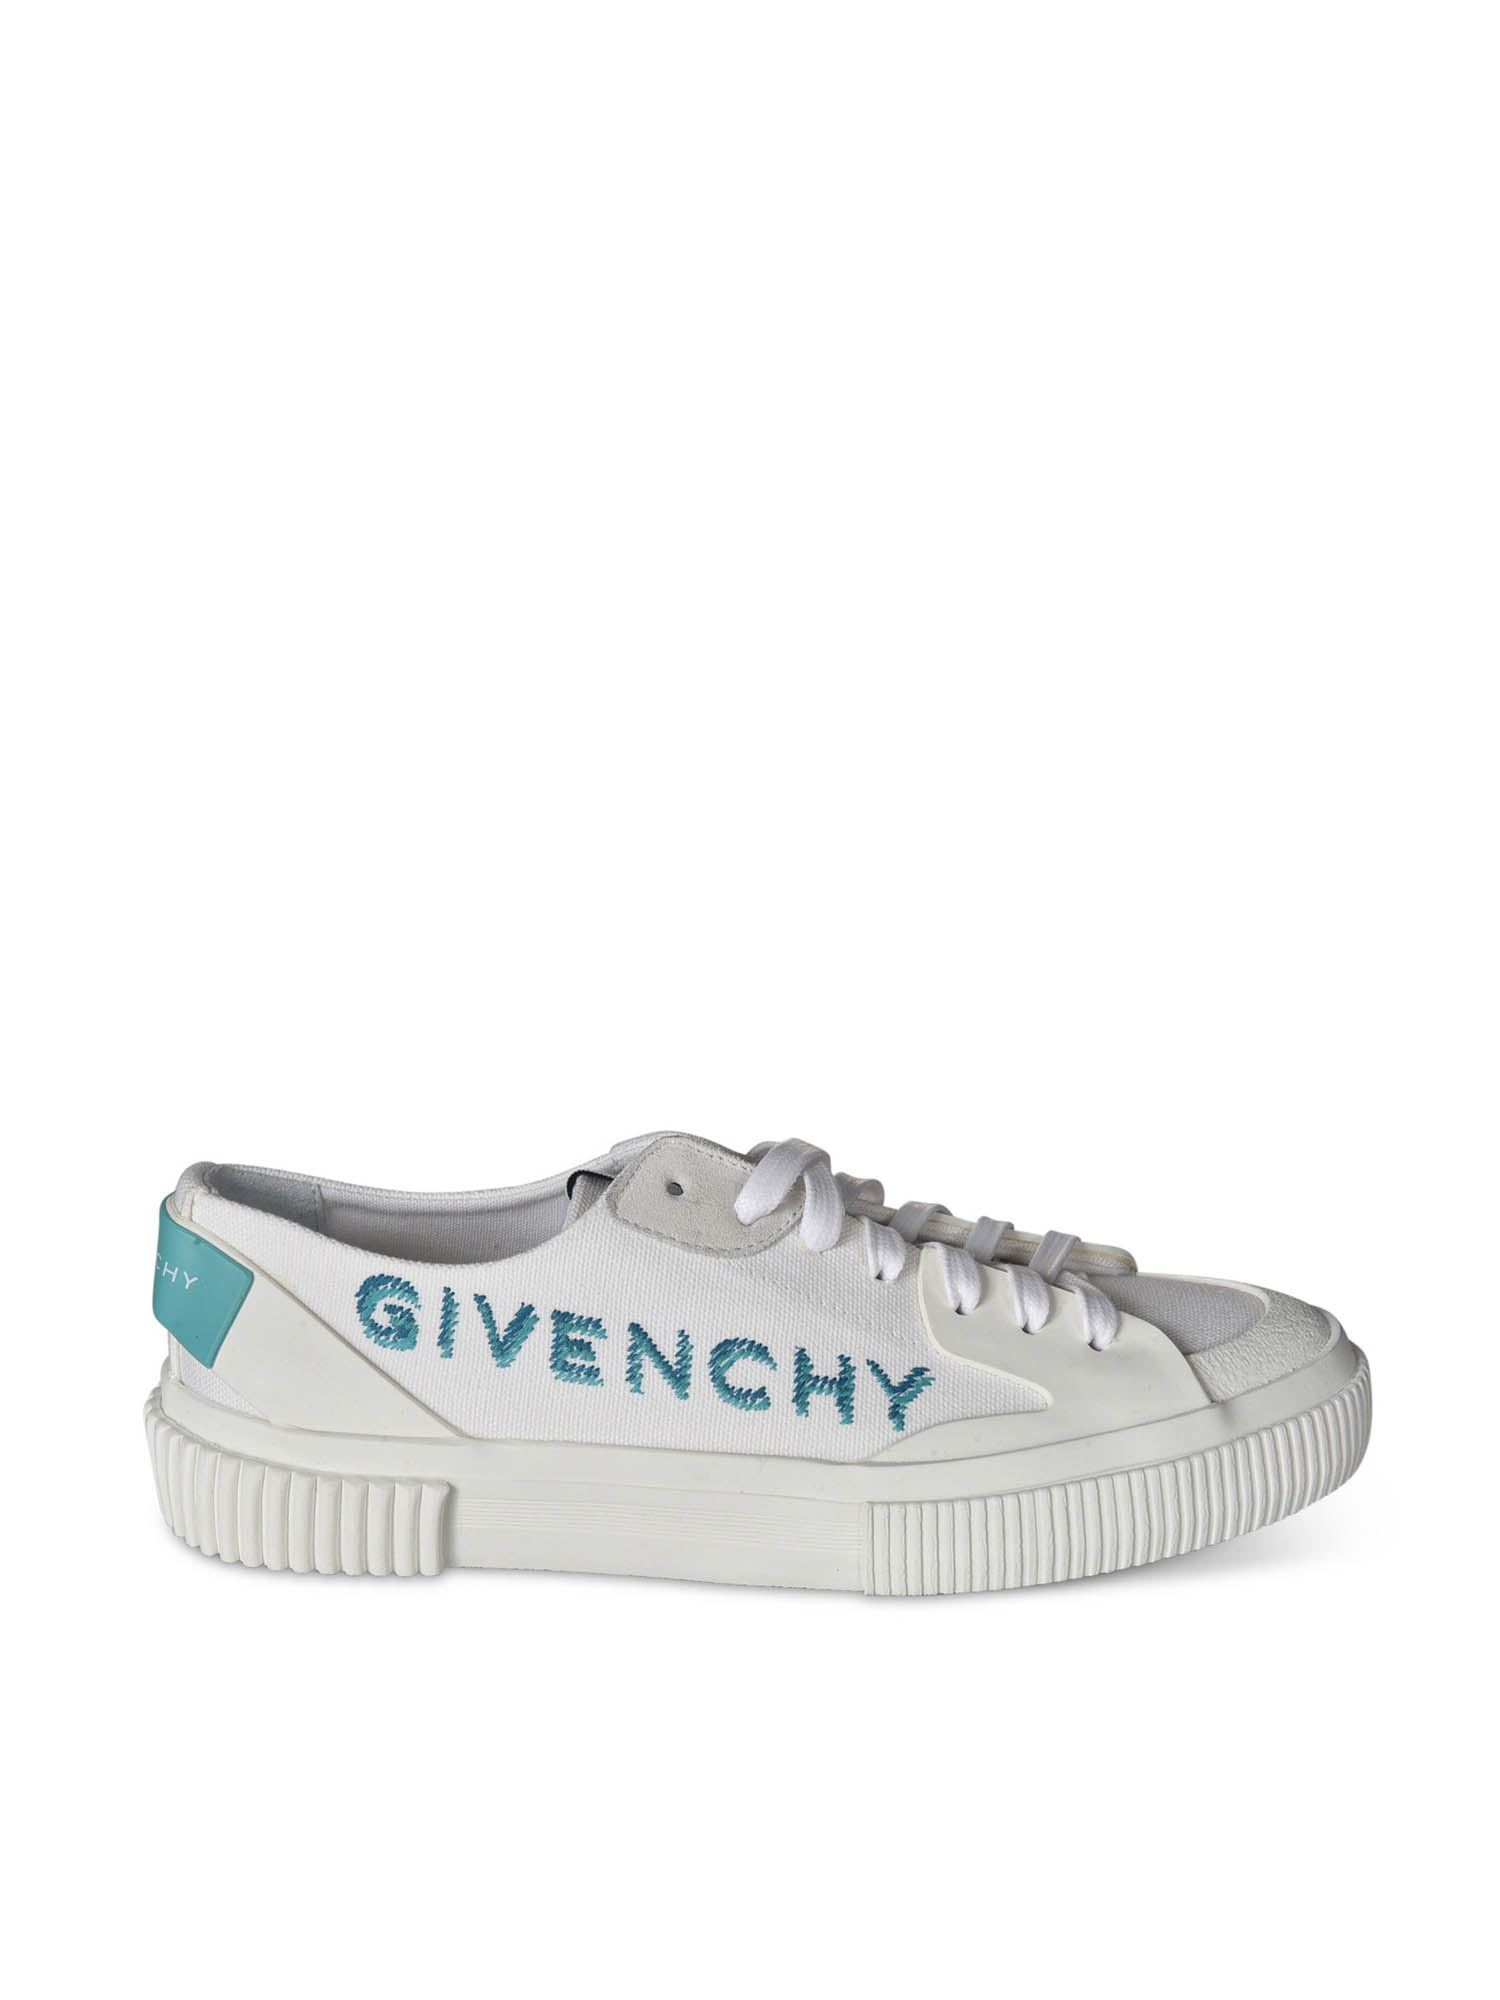 Givenchy Leathers SNEAKERS IN WHITE FEATURING CONTRASTING LOGO